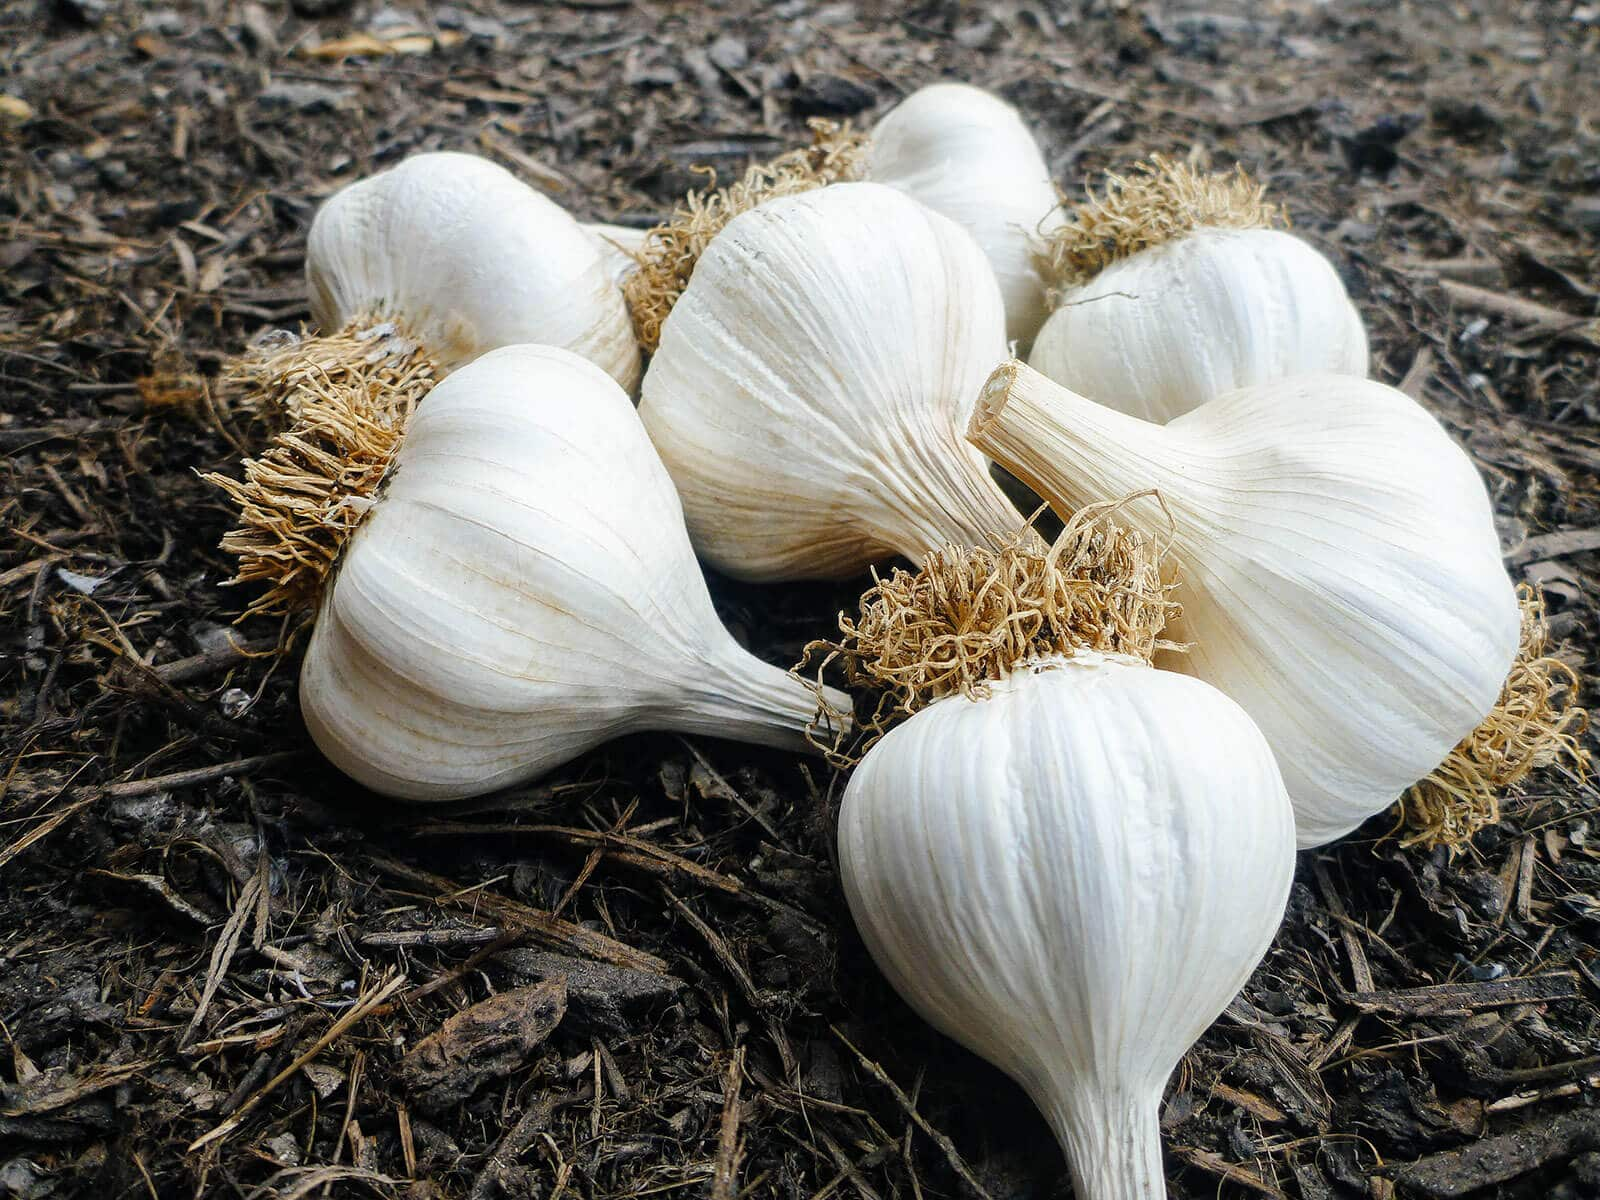 Freshly harvested garlic bulbs in summer with the roots and tops trimmed